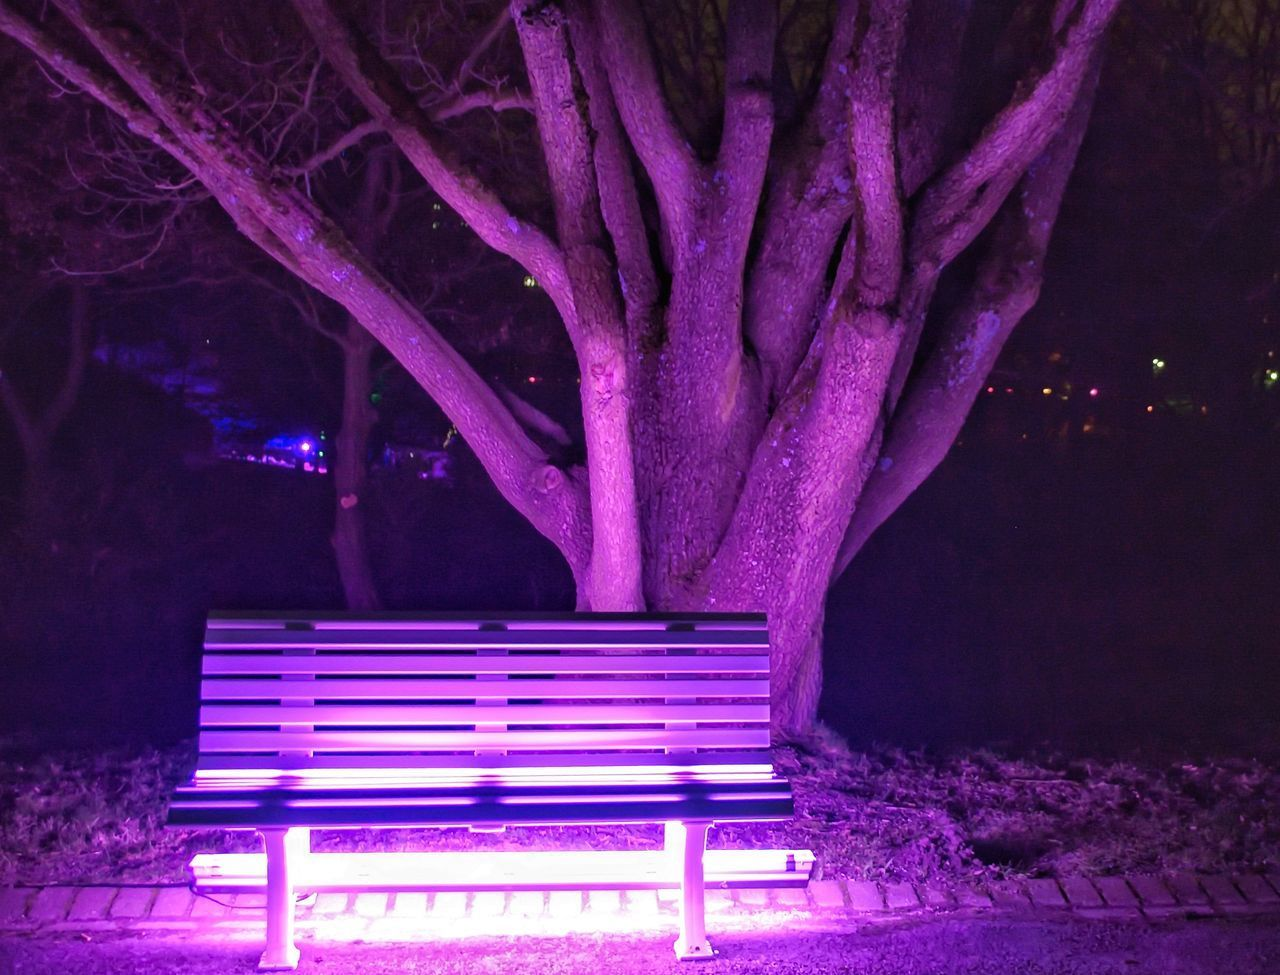 night, seat, bench, purple, illuminated, no people, park, plant, nature, tree, absence, empty, park - man made space, light - natural phenomenon, growth, auto post production filter, outdoors, pink color, beauty in nature, architecture, park bench